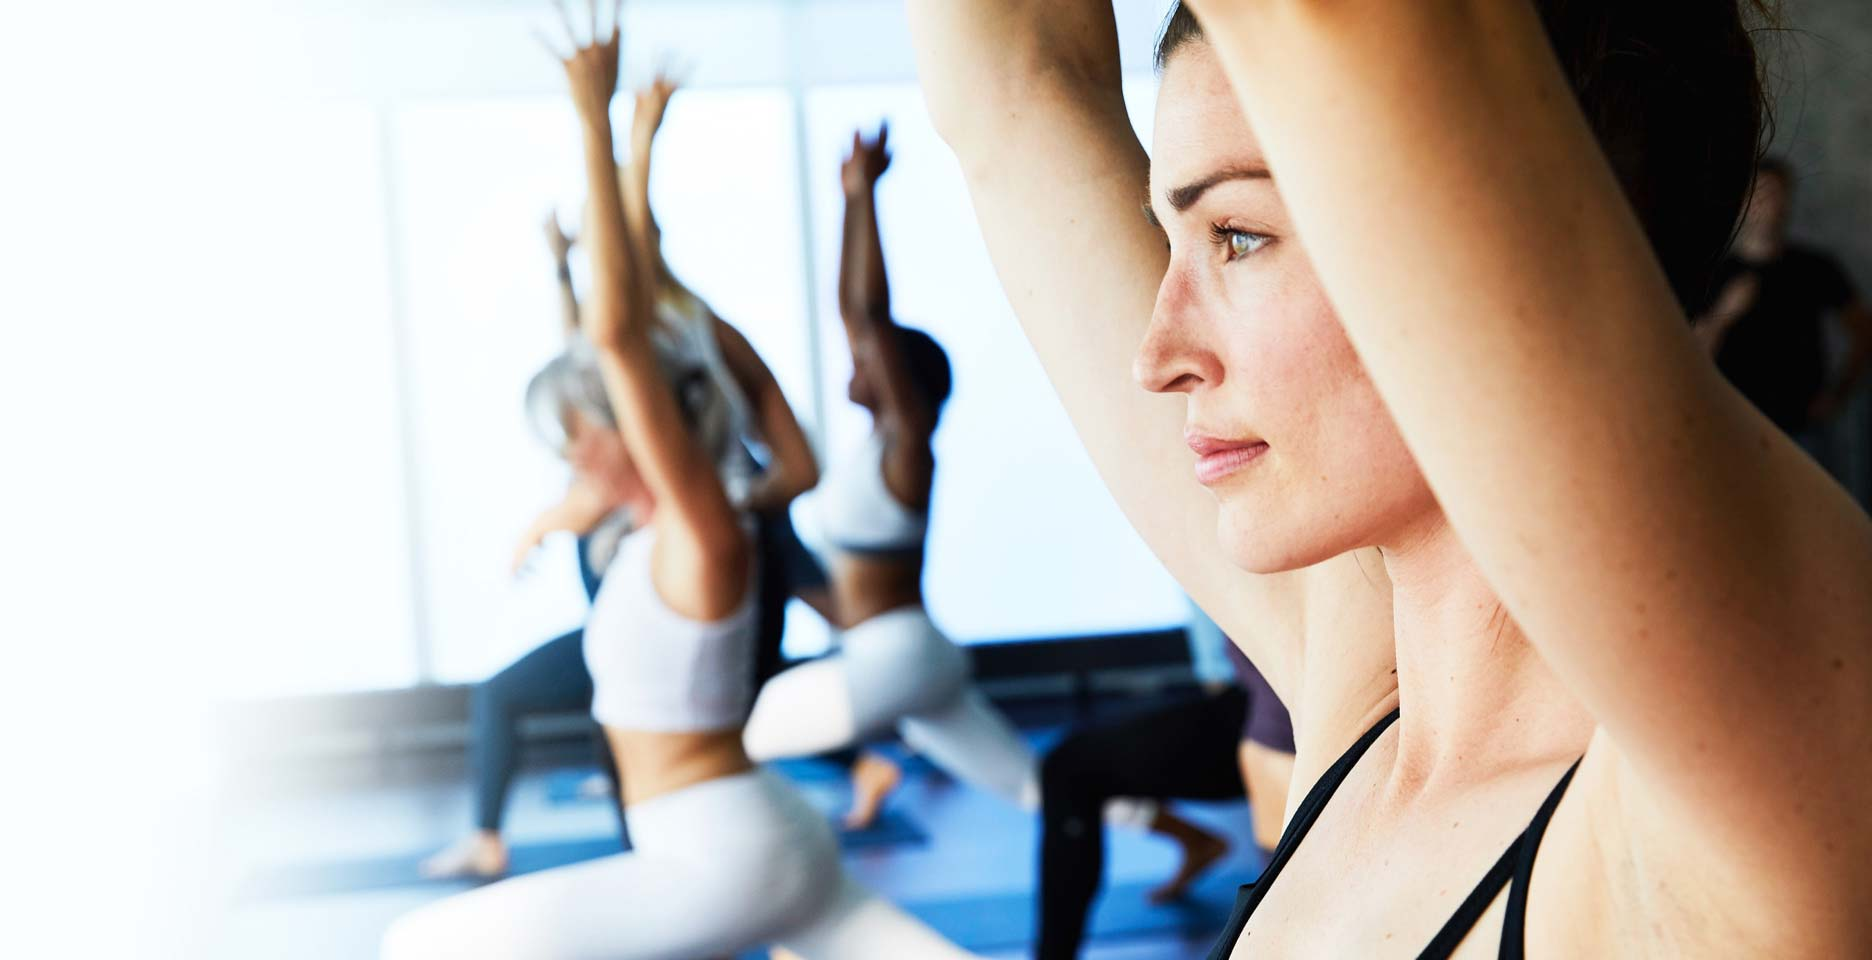 Yoga Classes at Life Time | Classes and Programs for All Yogis